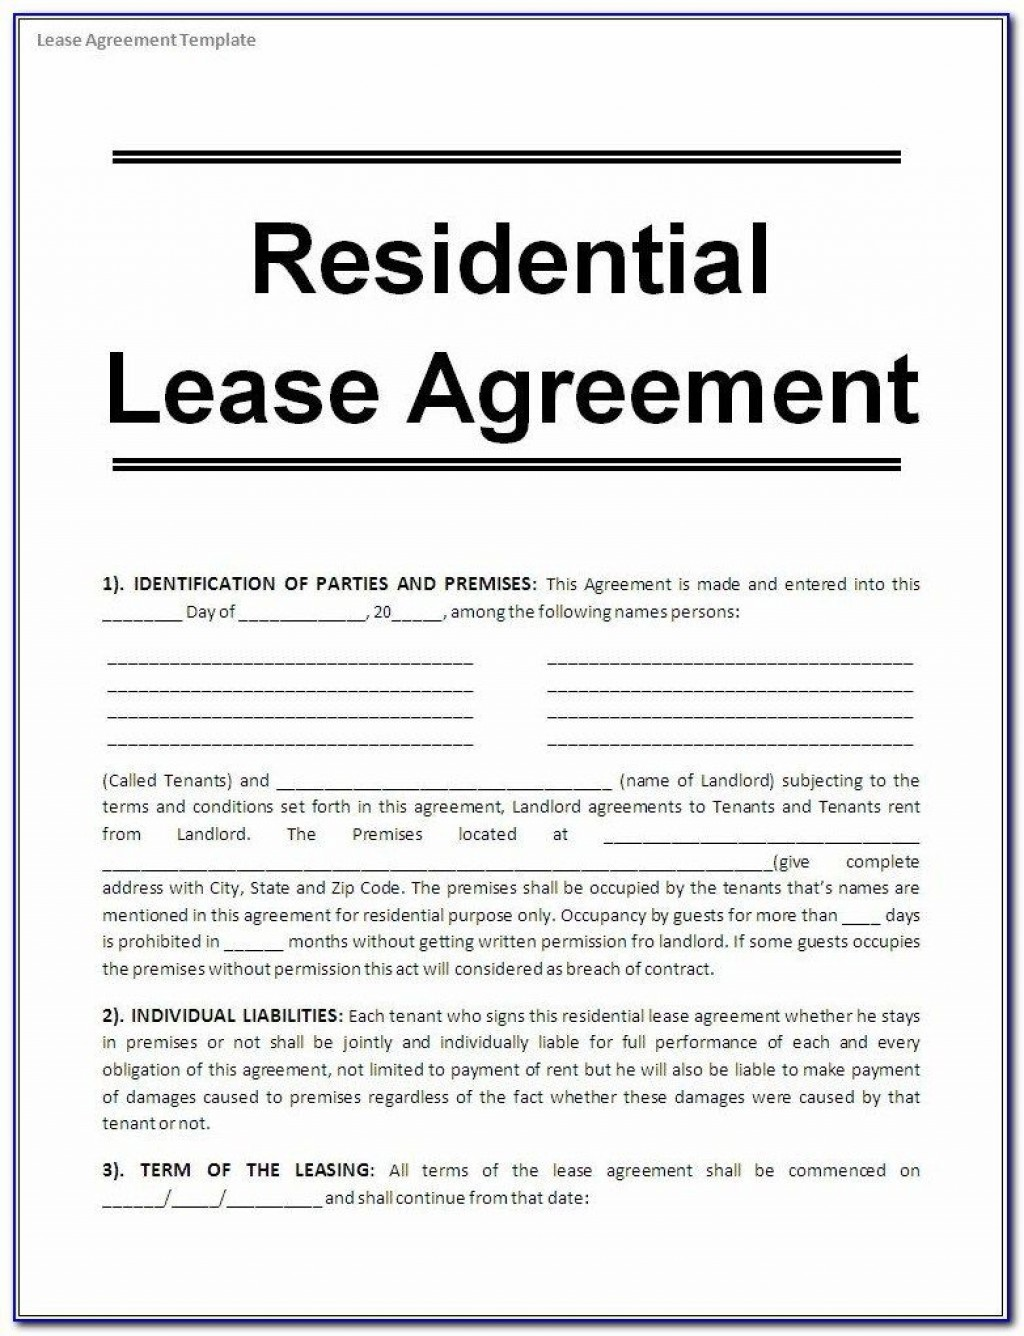 005 Wonderful Lease Agreement Template Word South Africa Photo  Free Simple Residential Commercial DocumentLarge